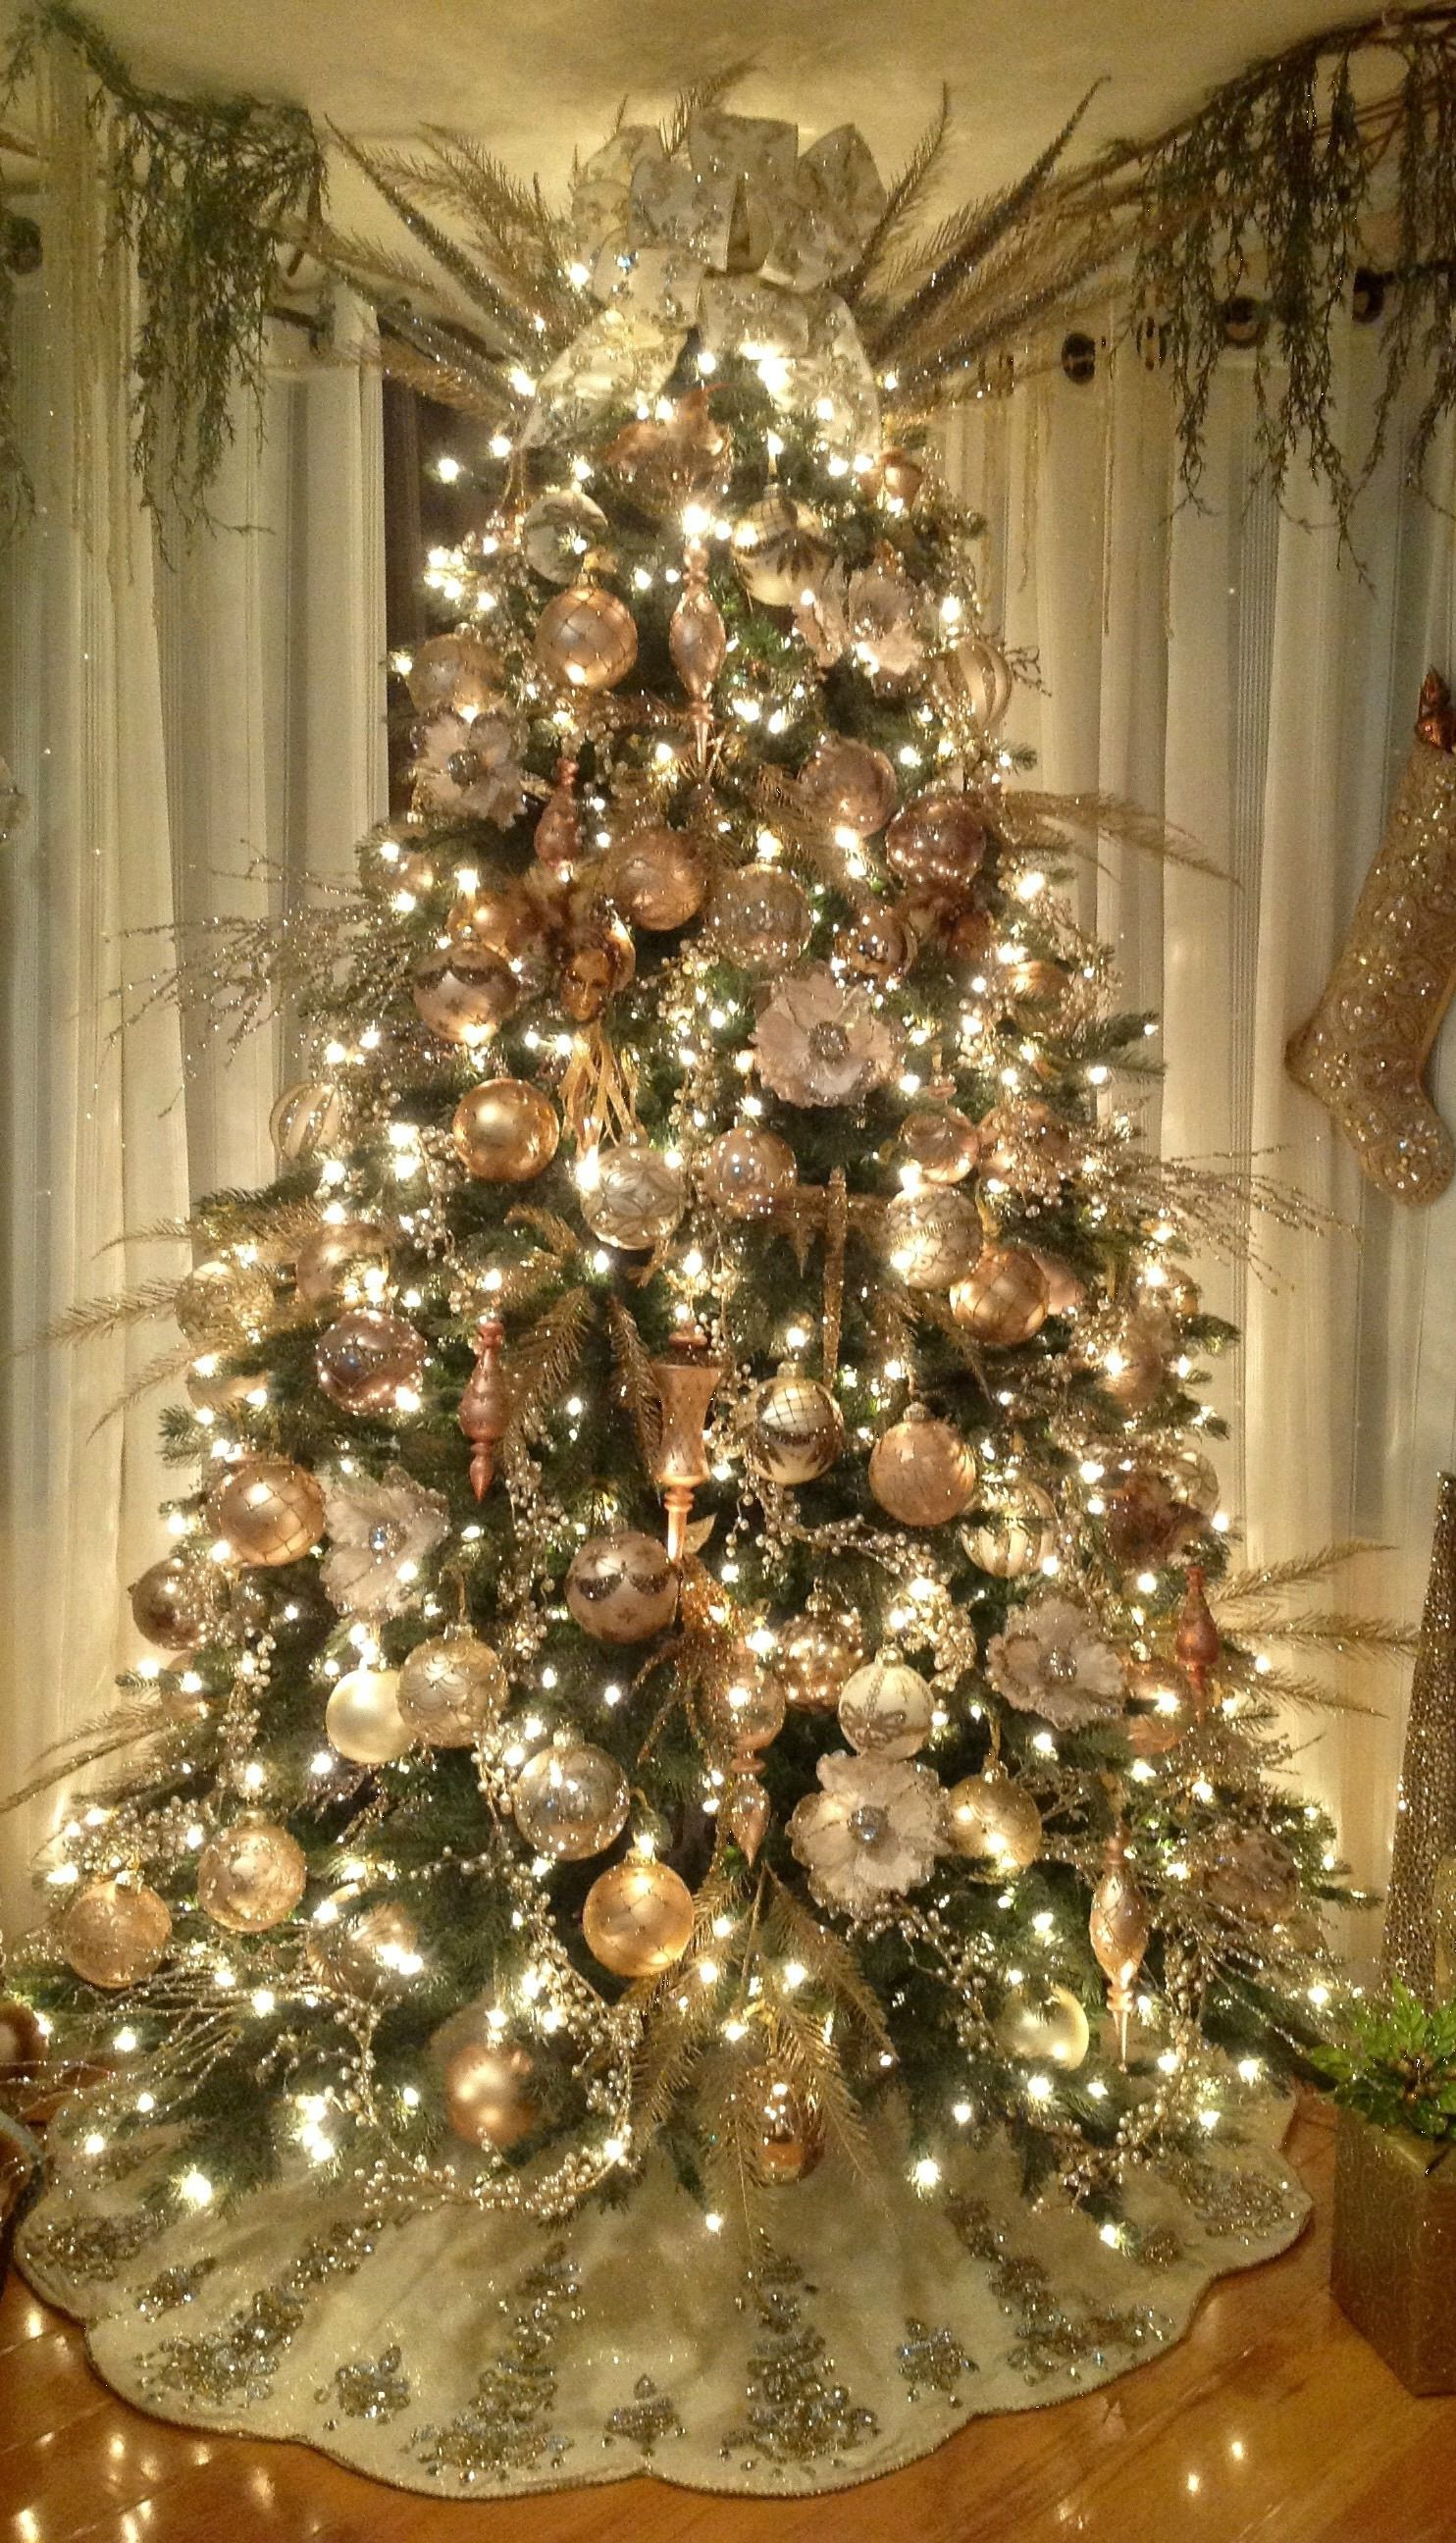 Frontgate Christmas Trees.Photo Credit Vahan Missirian Frontgate Holiday Decor